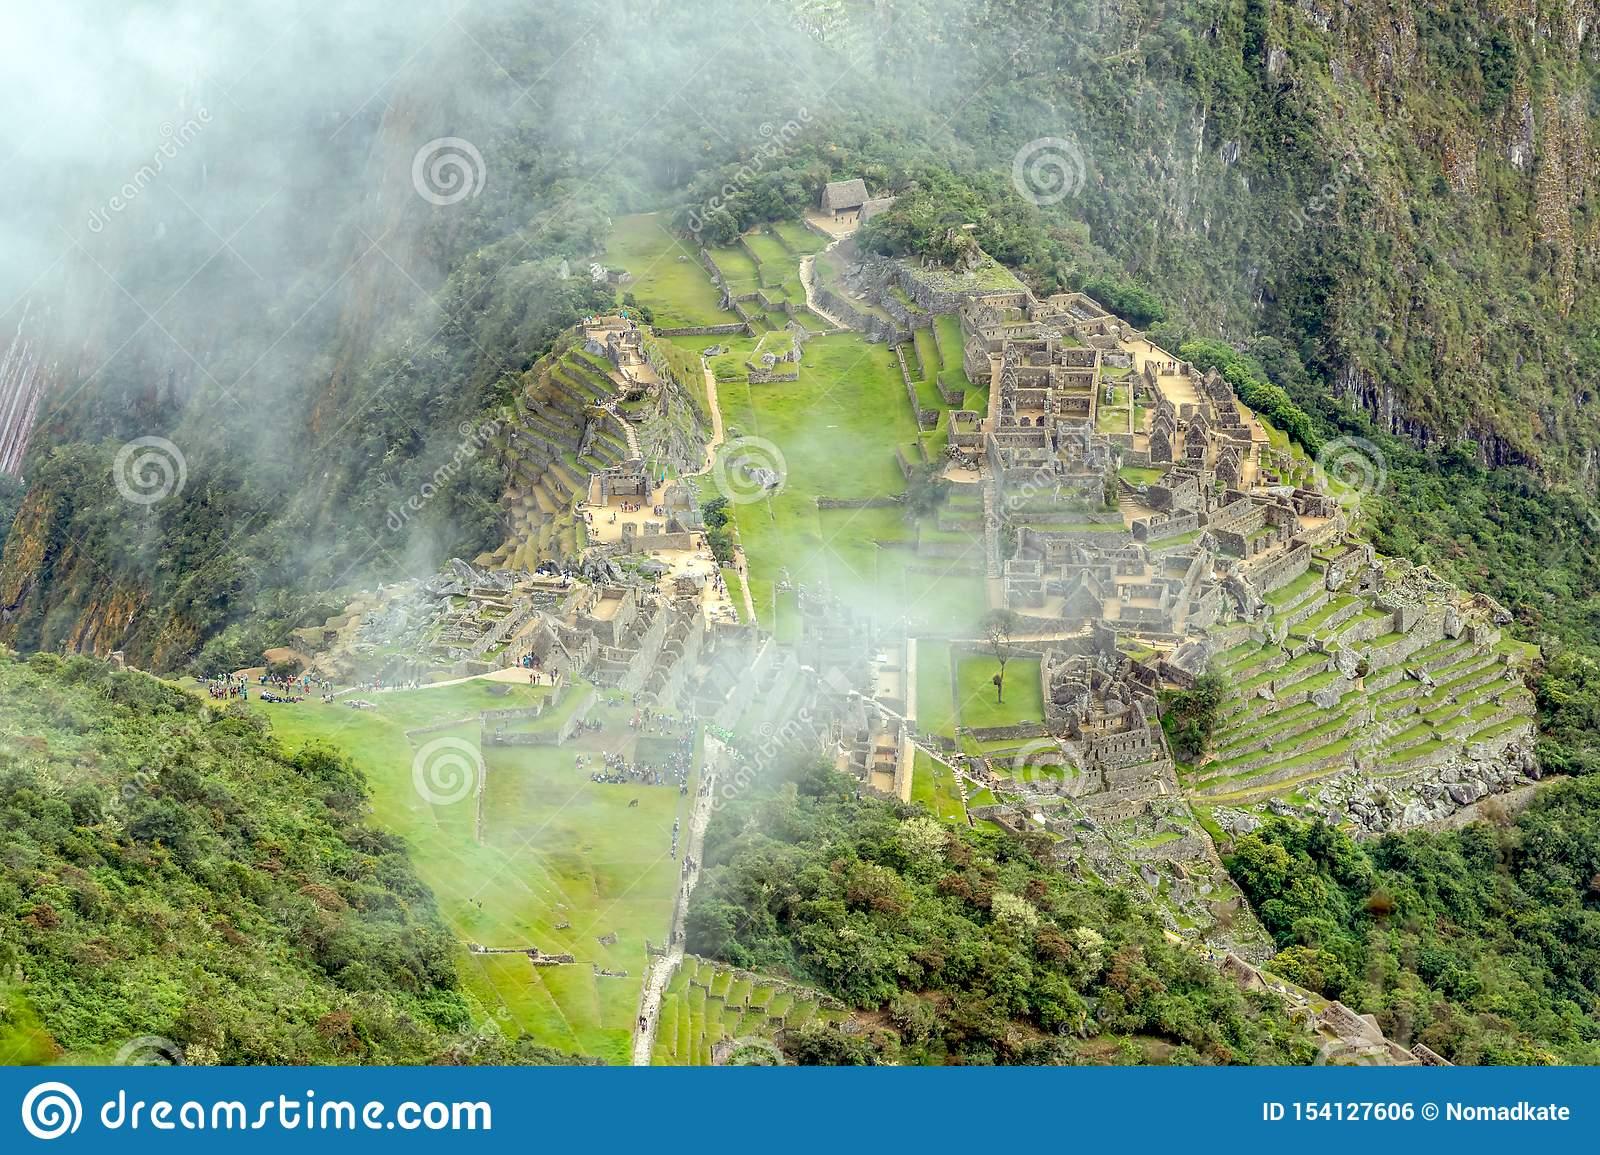 Aerial view of Machu Picchu Inca citadel ruins built in the classical Inca style, with polished dry-stone walls